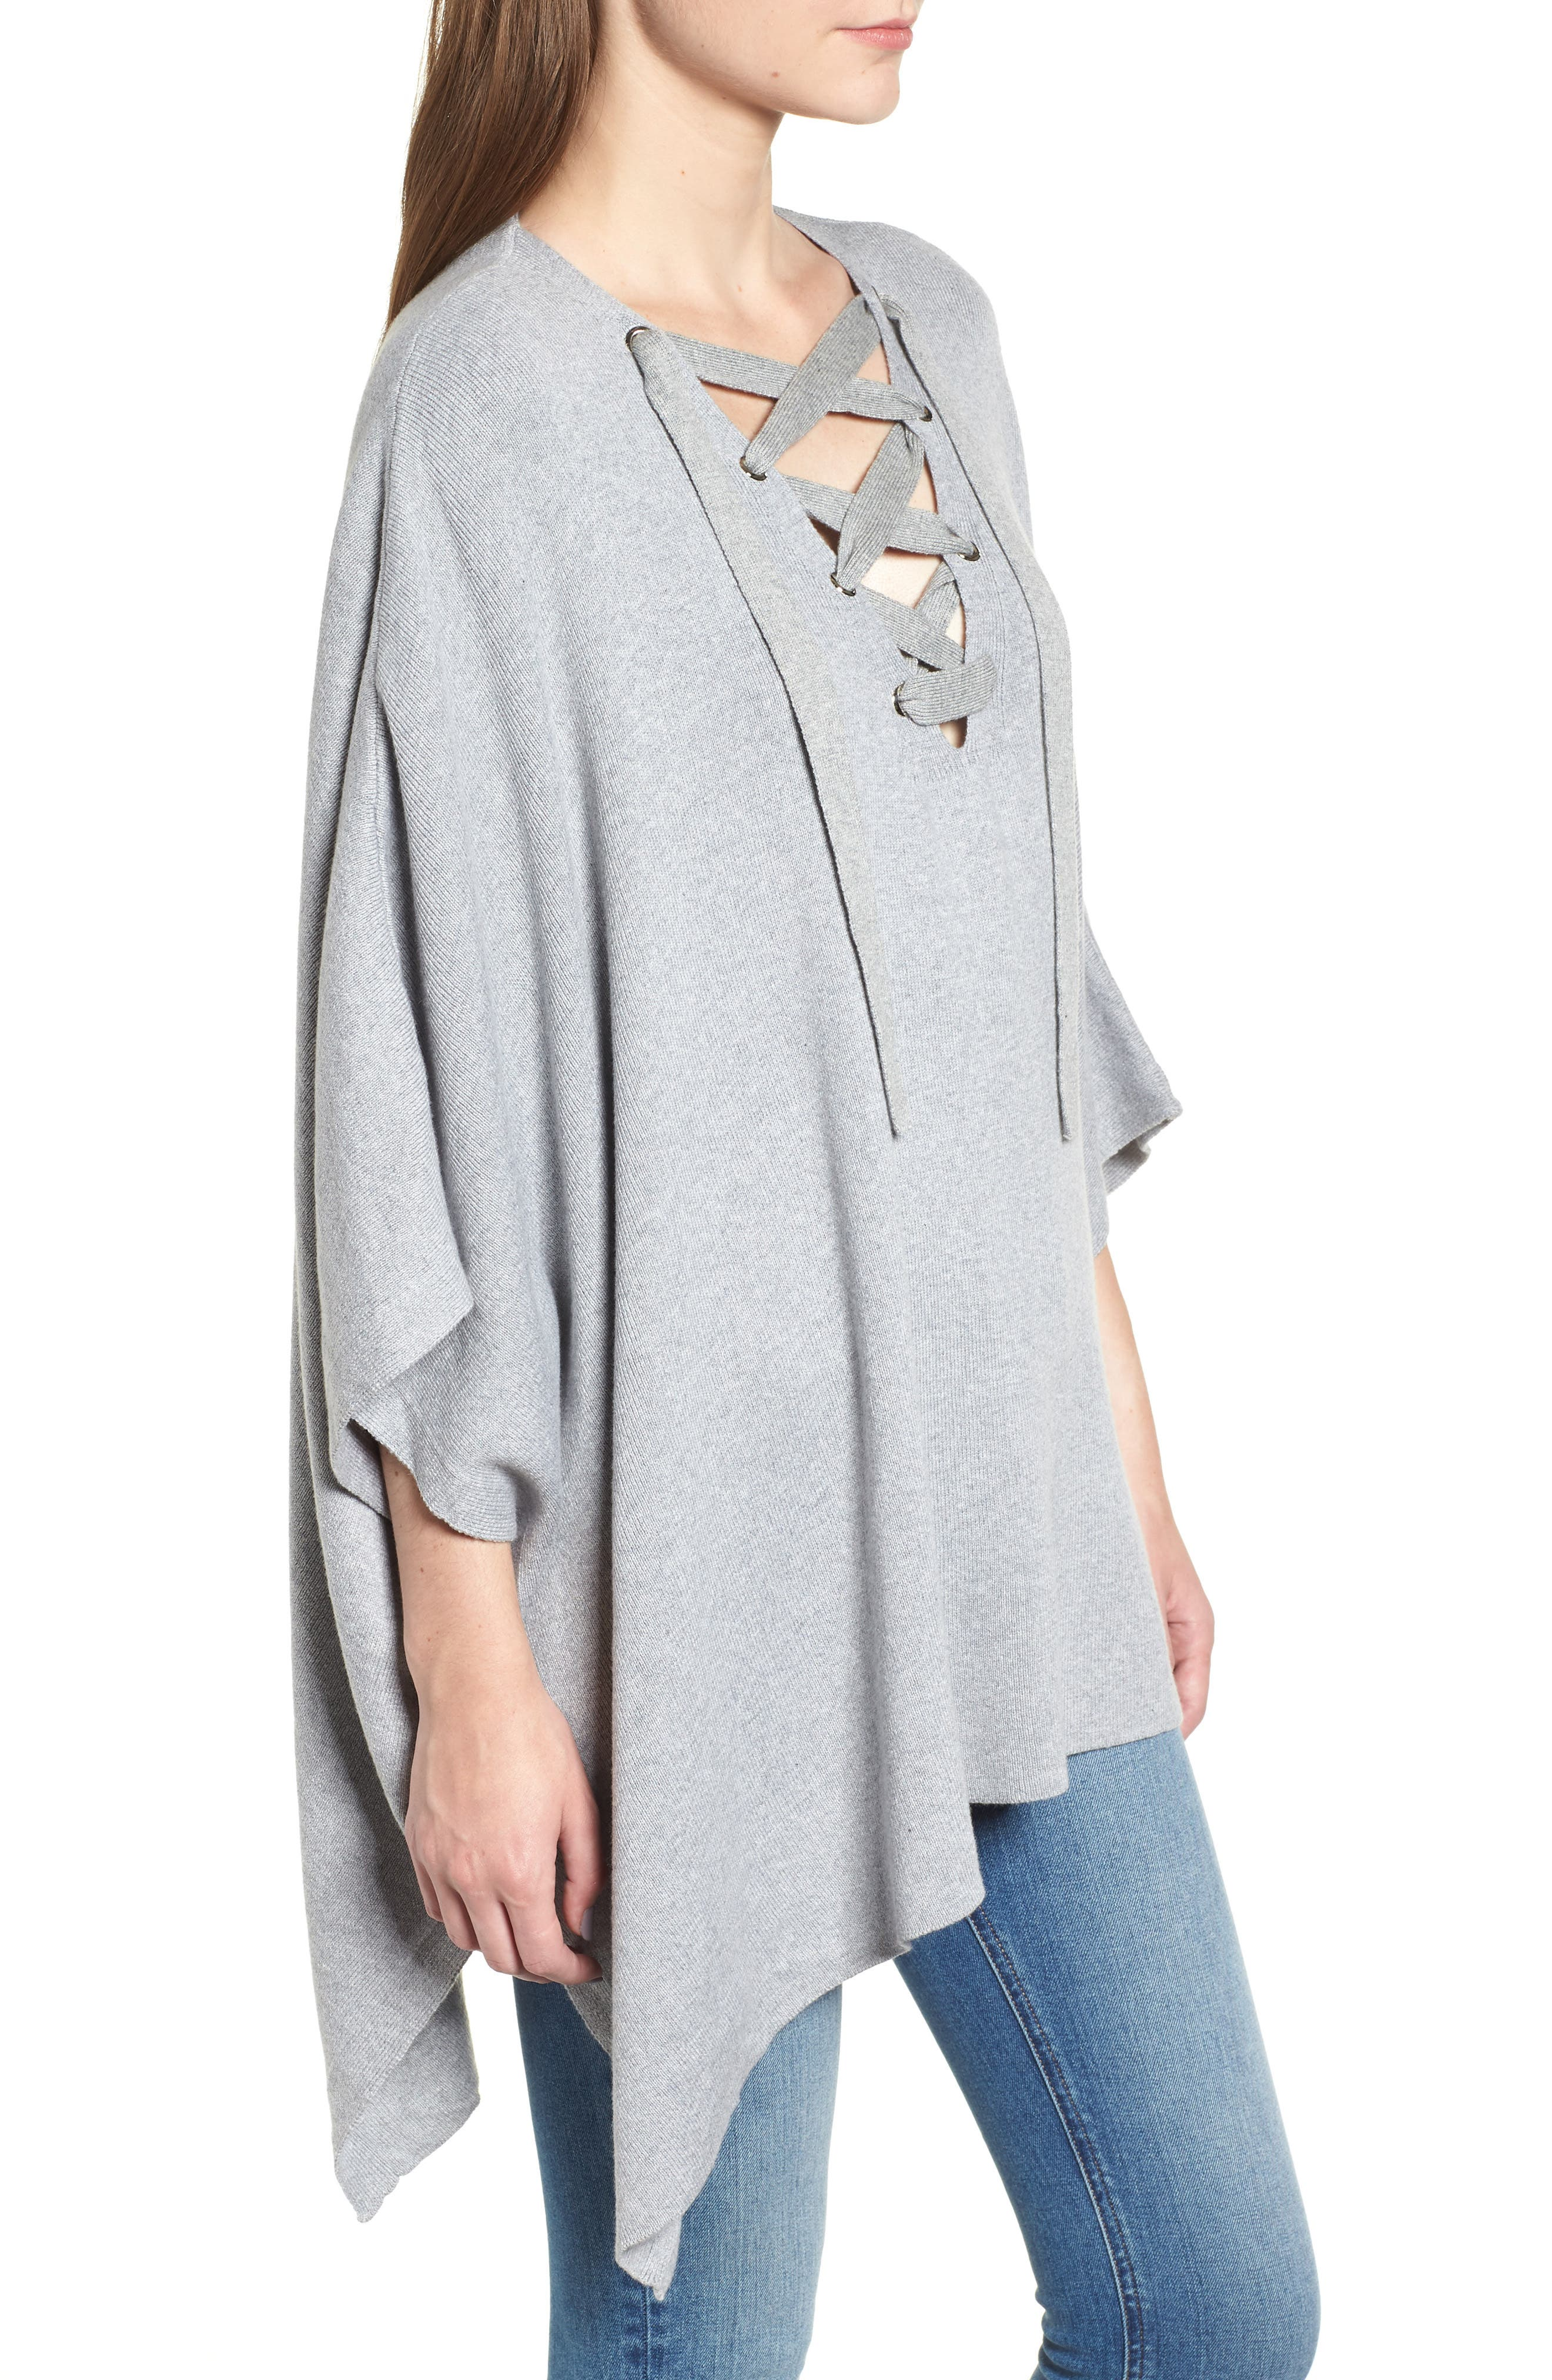 Bishop + Young Harper Lace-Up Poncho,                             Alternate thumbnail 3, color,                             035